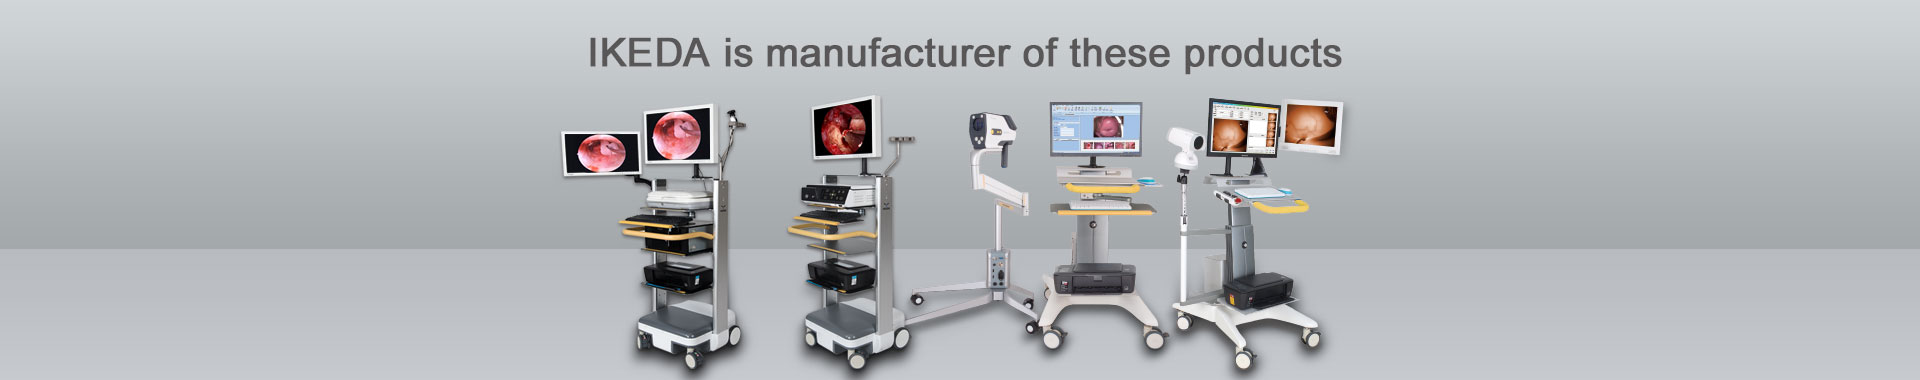 Endoscope Camera, Colposcope, Trolley, Accessory